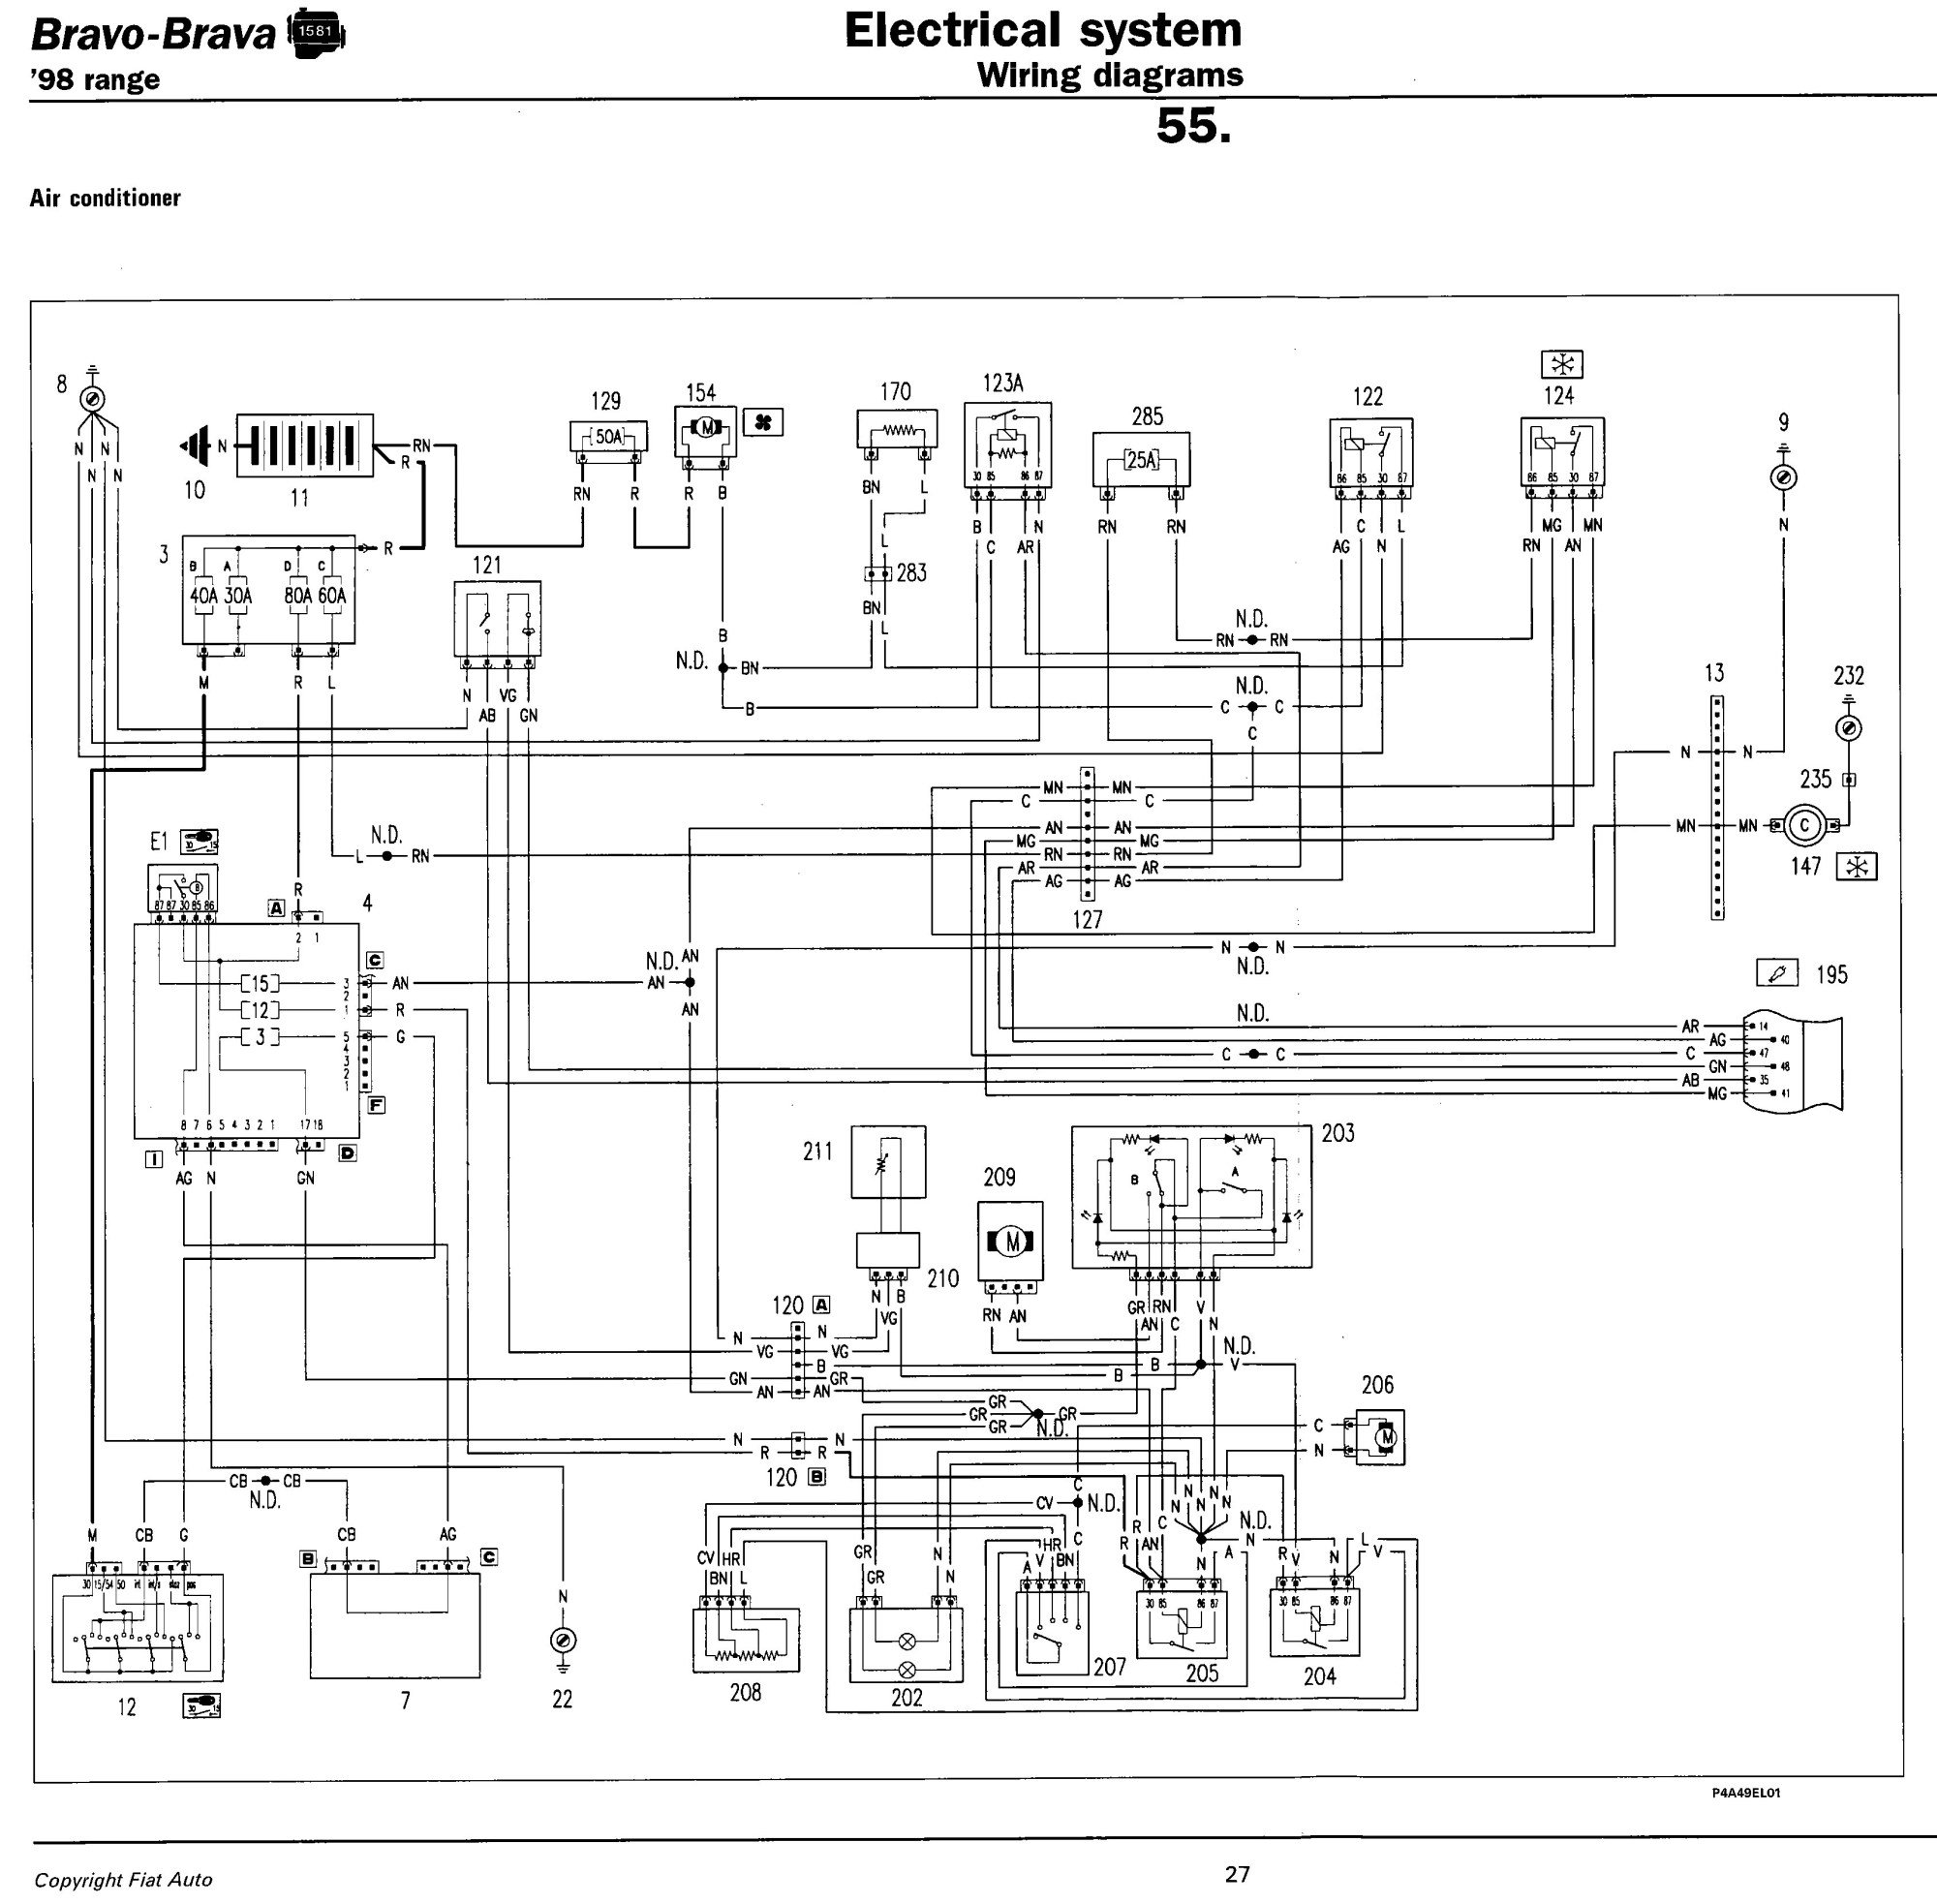 hight resolution of fiat punto electrical wiring diagram wiring library fiat punto 2001 wiring diagram